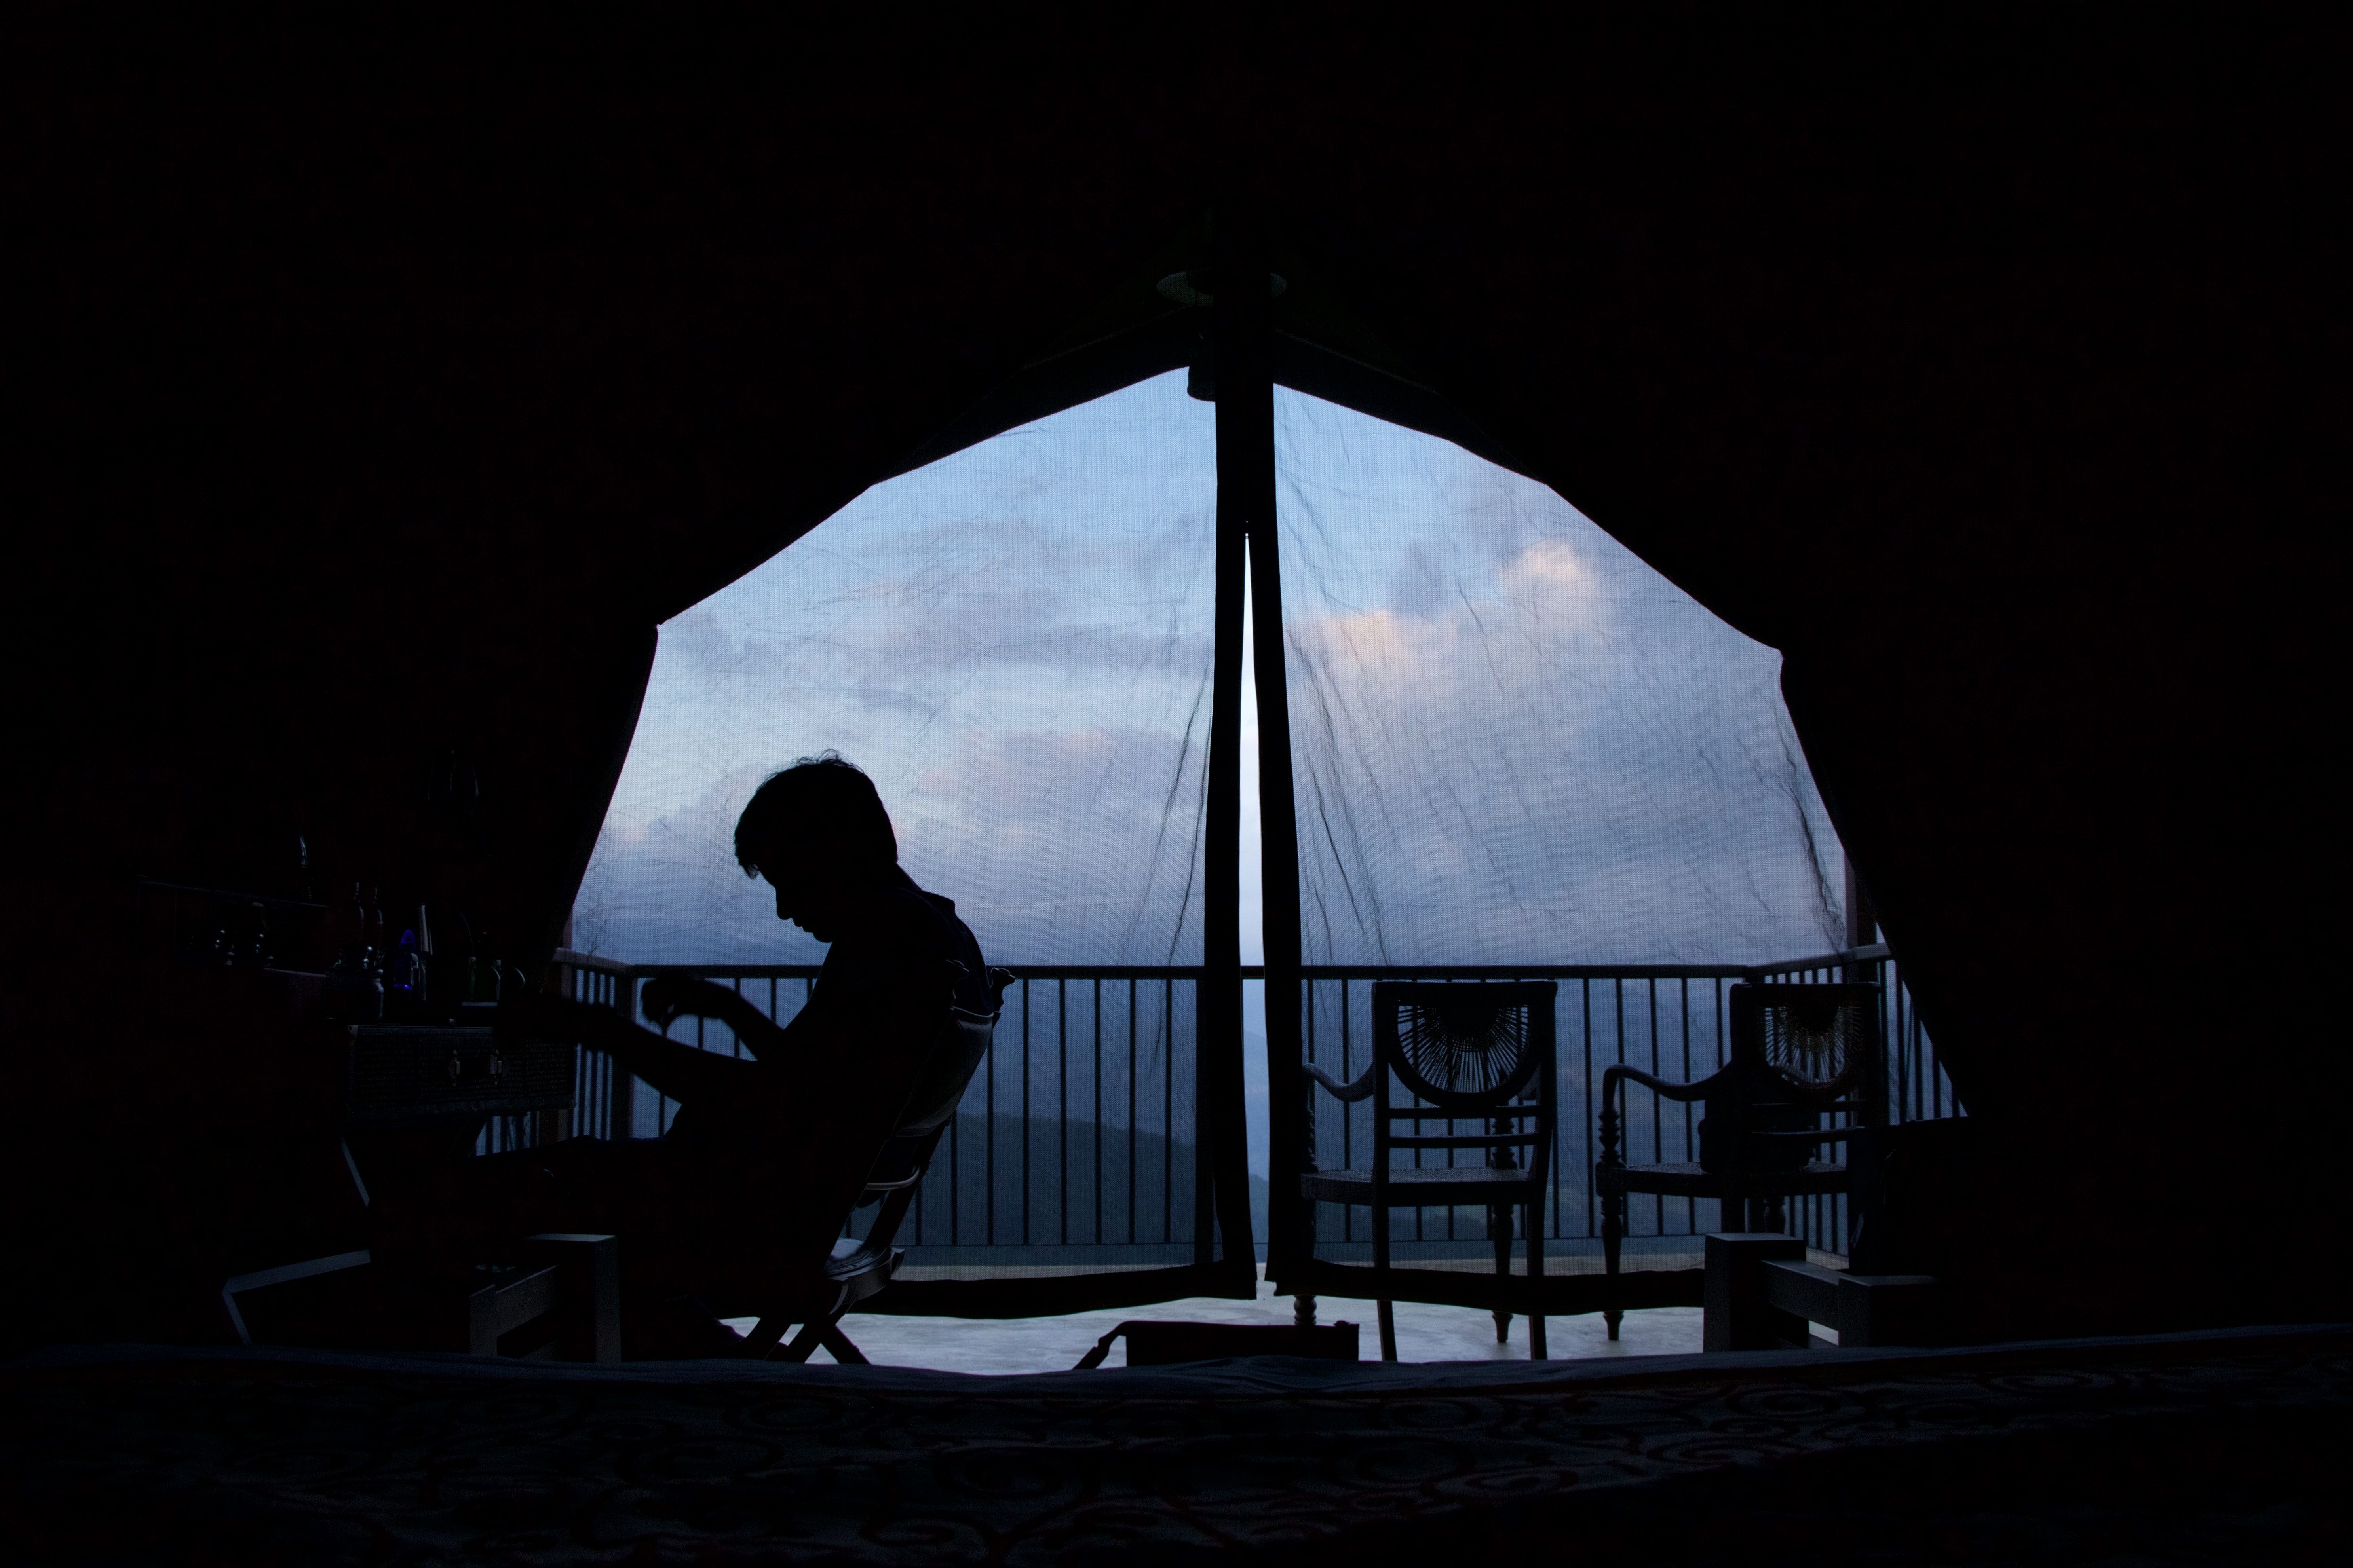 Silhouette of a person sitting on a chair in a tent at dusk